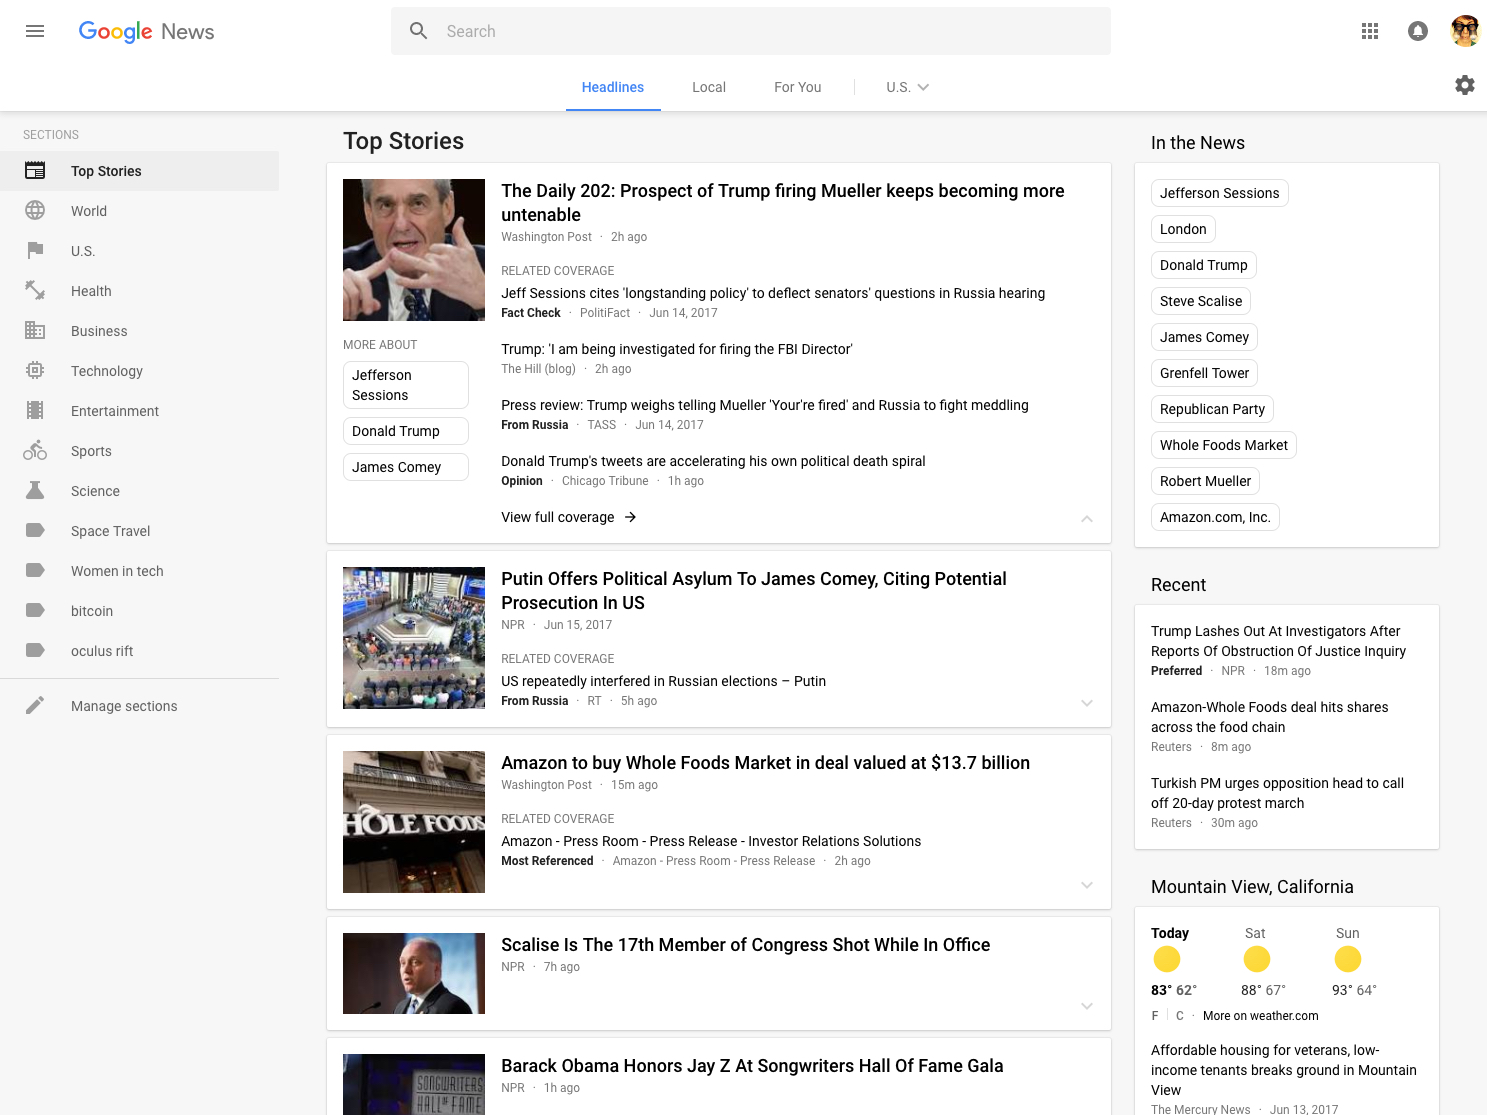 Google News gets a makeover, joins the rest in a redesigned look